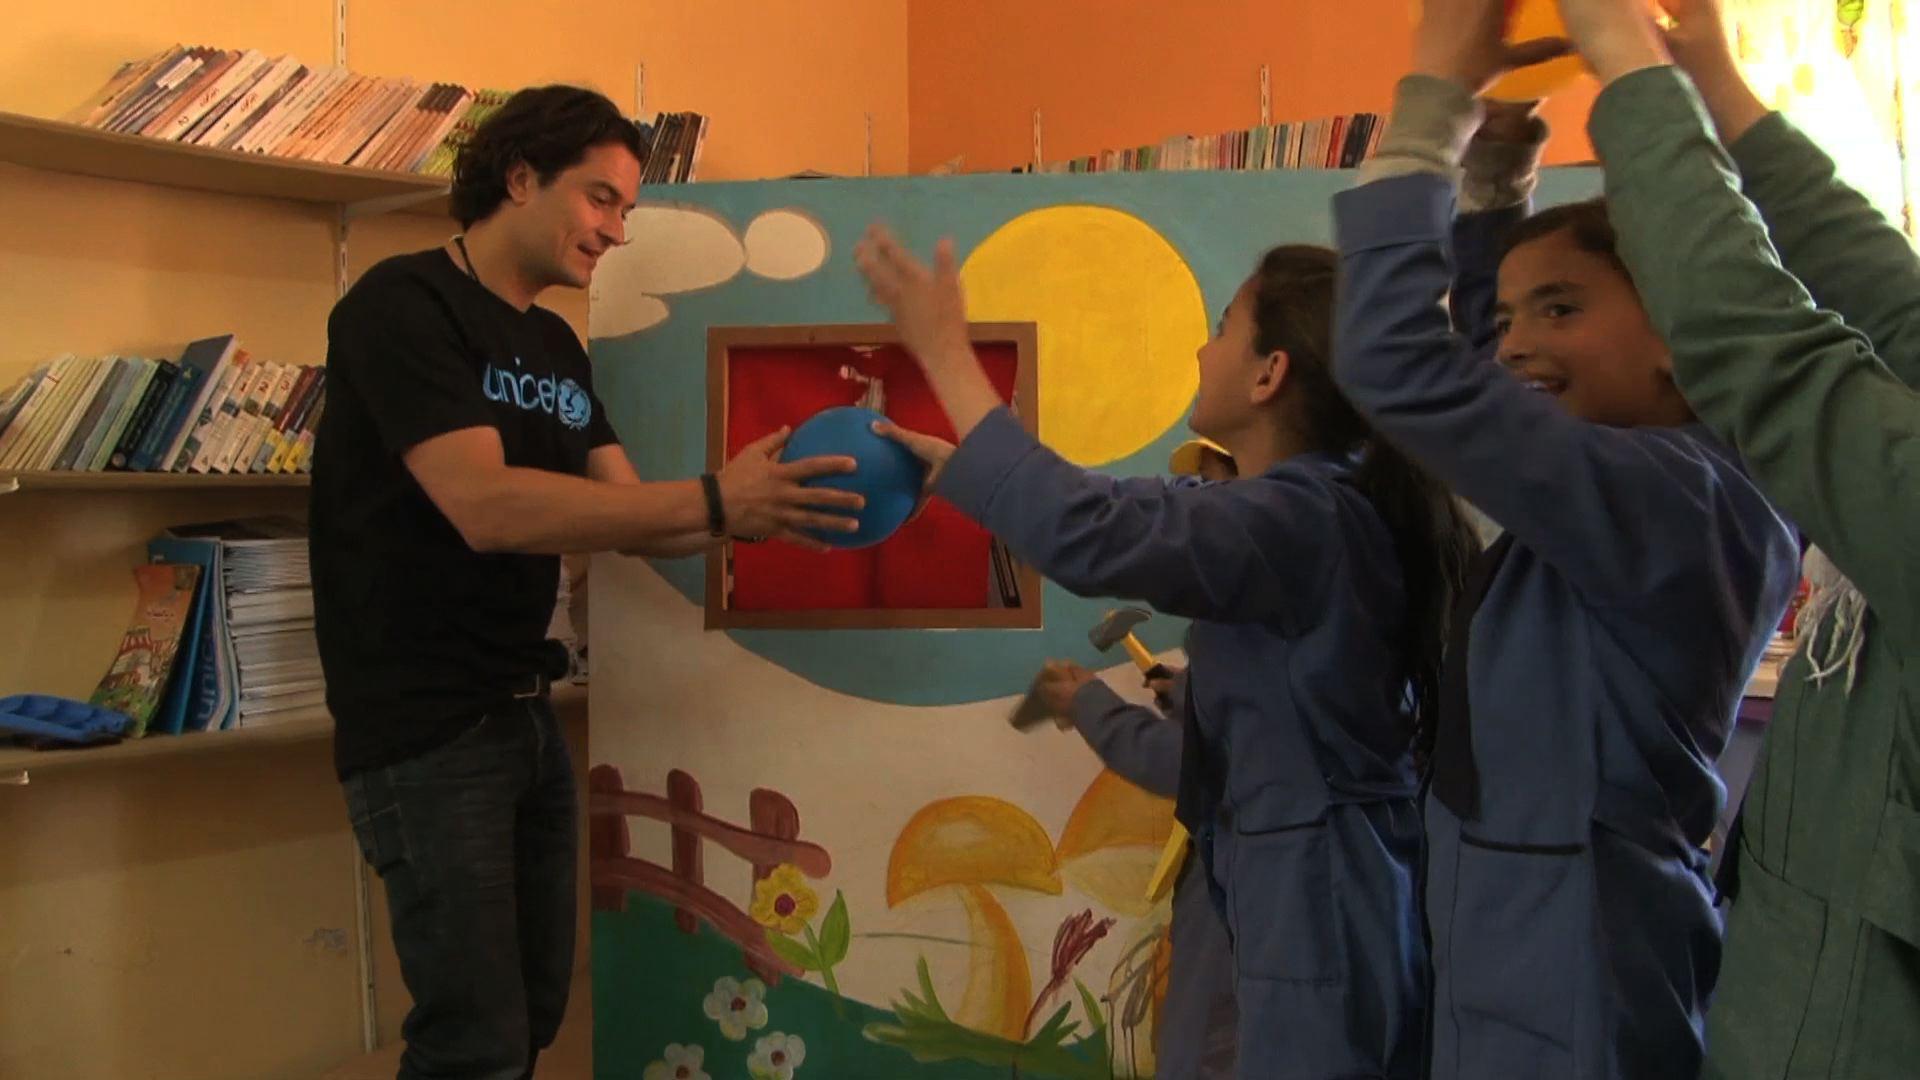 Selected frame from video story UNICEF / ORLANDO BLOOM